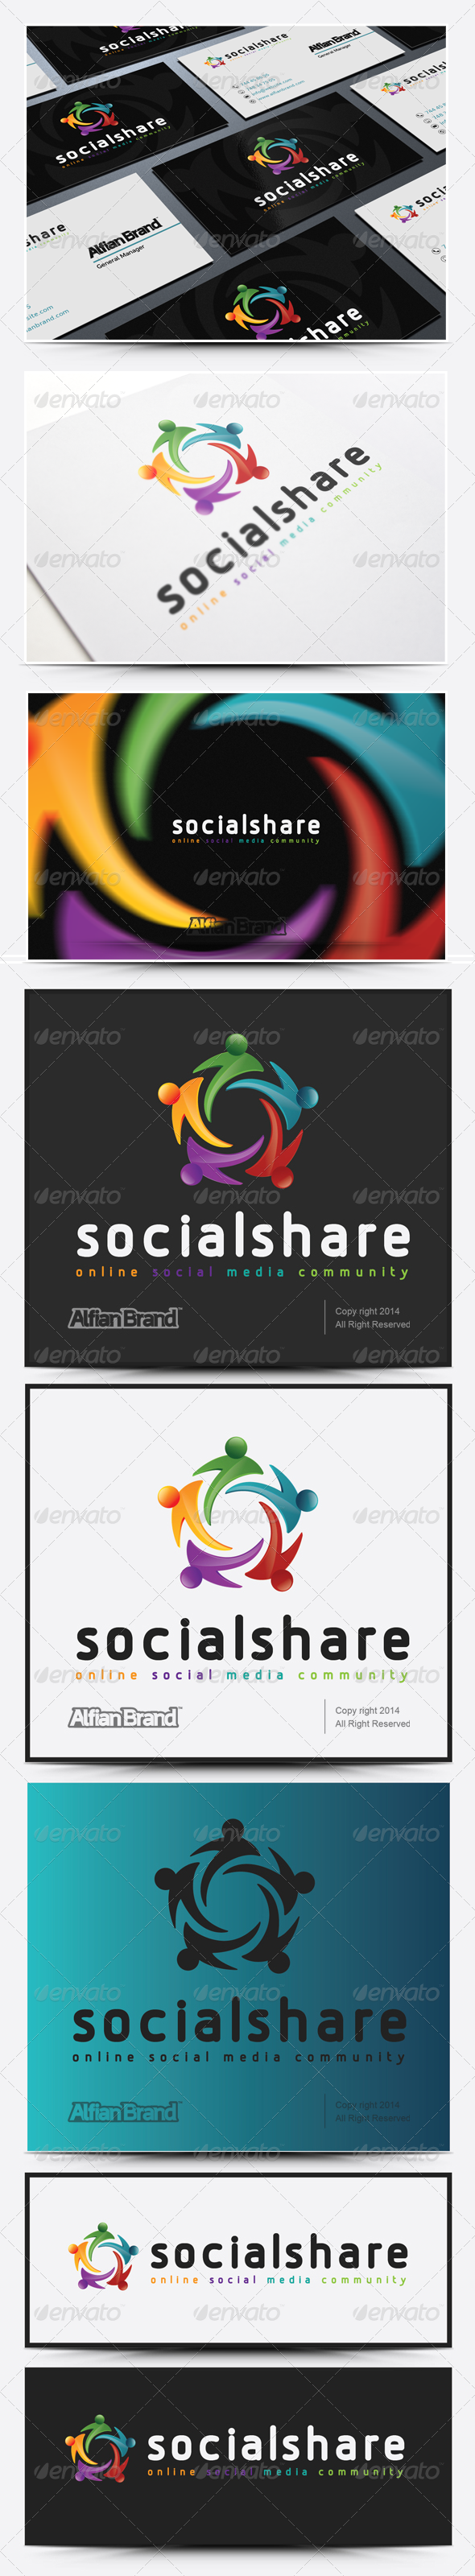 GraphicRiver Social Share Logo 8193753